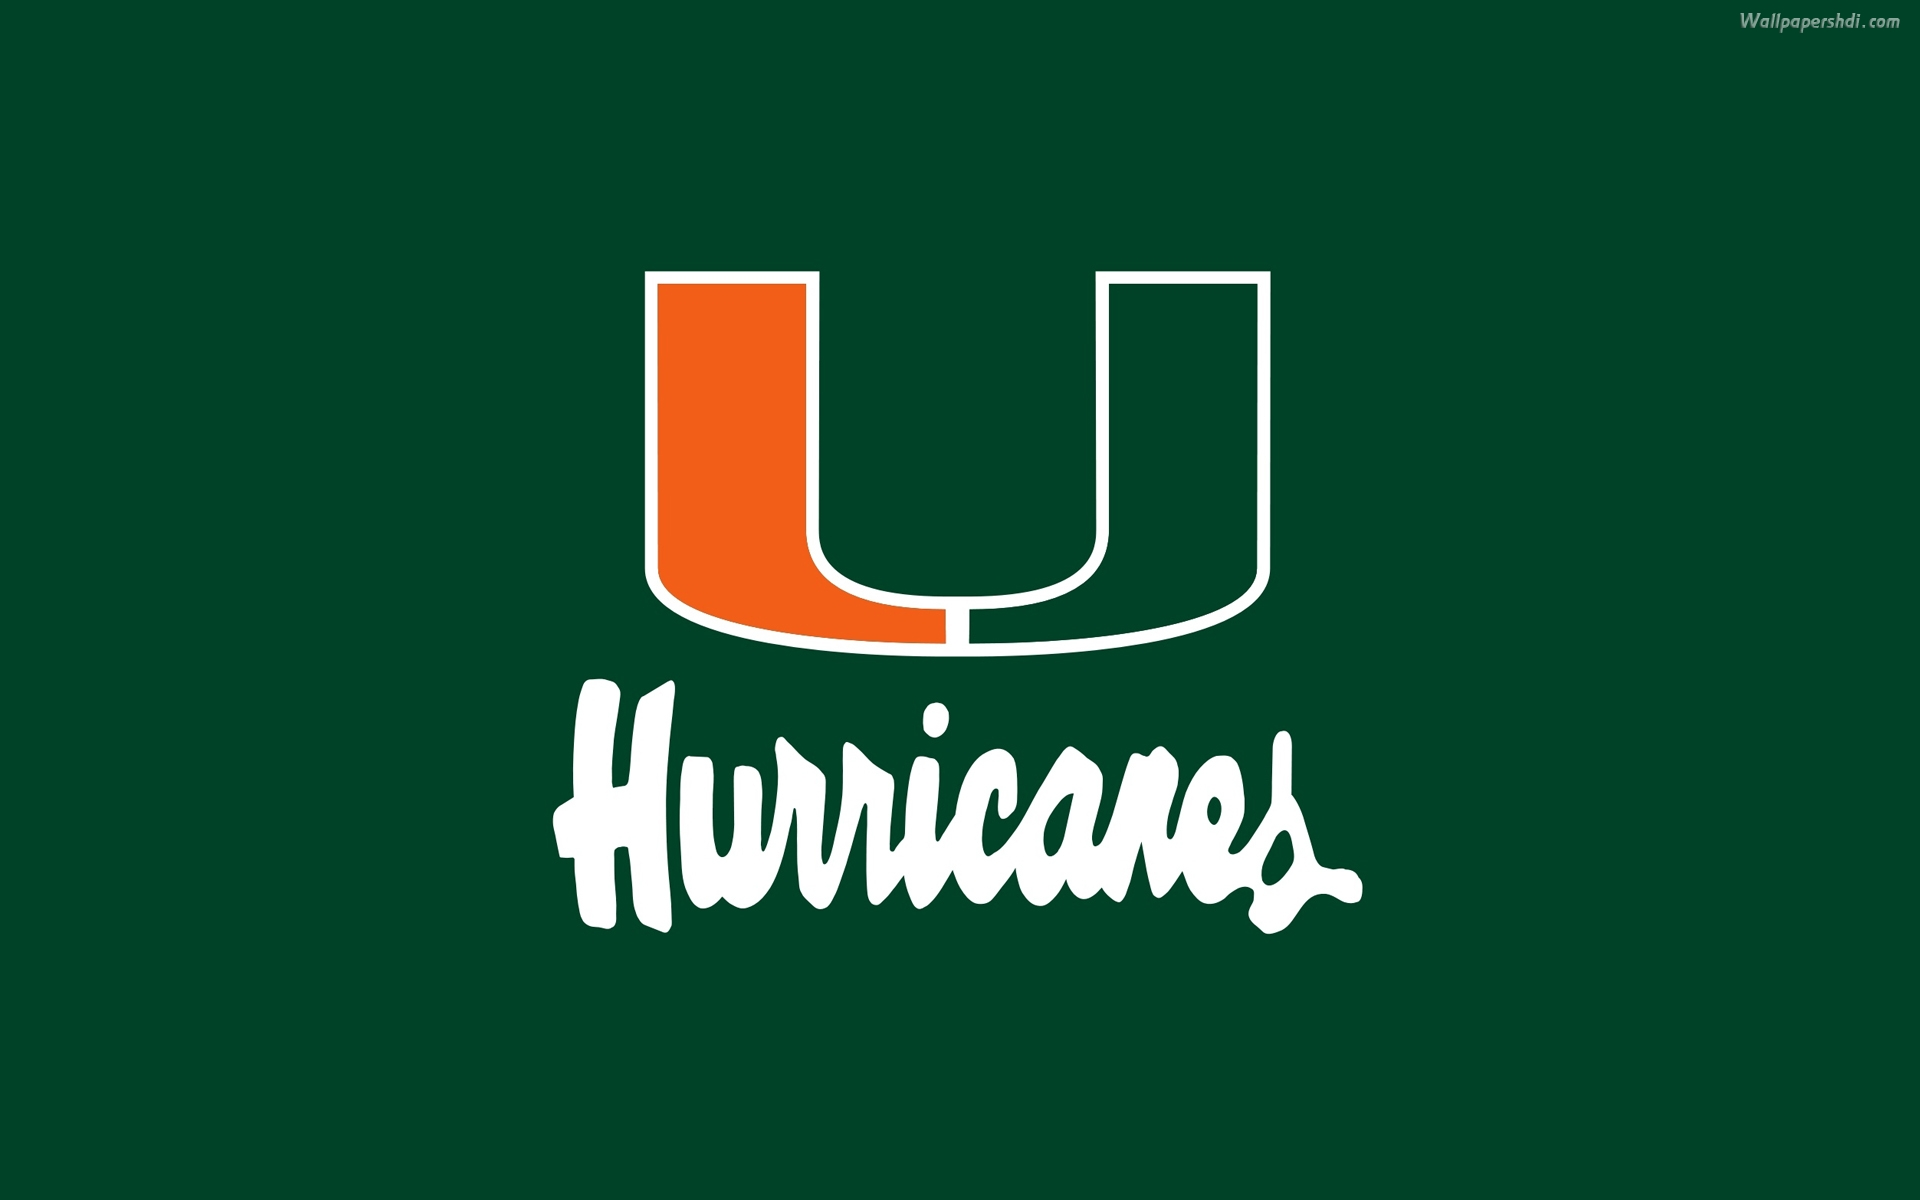 Miami Hurricanes Football Wallpaper - http://wallpaperzoo com